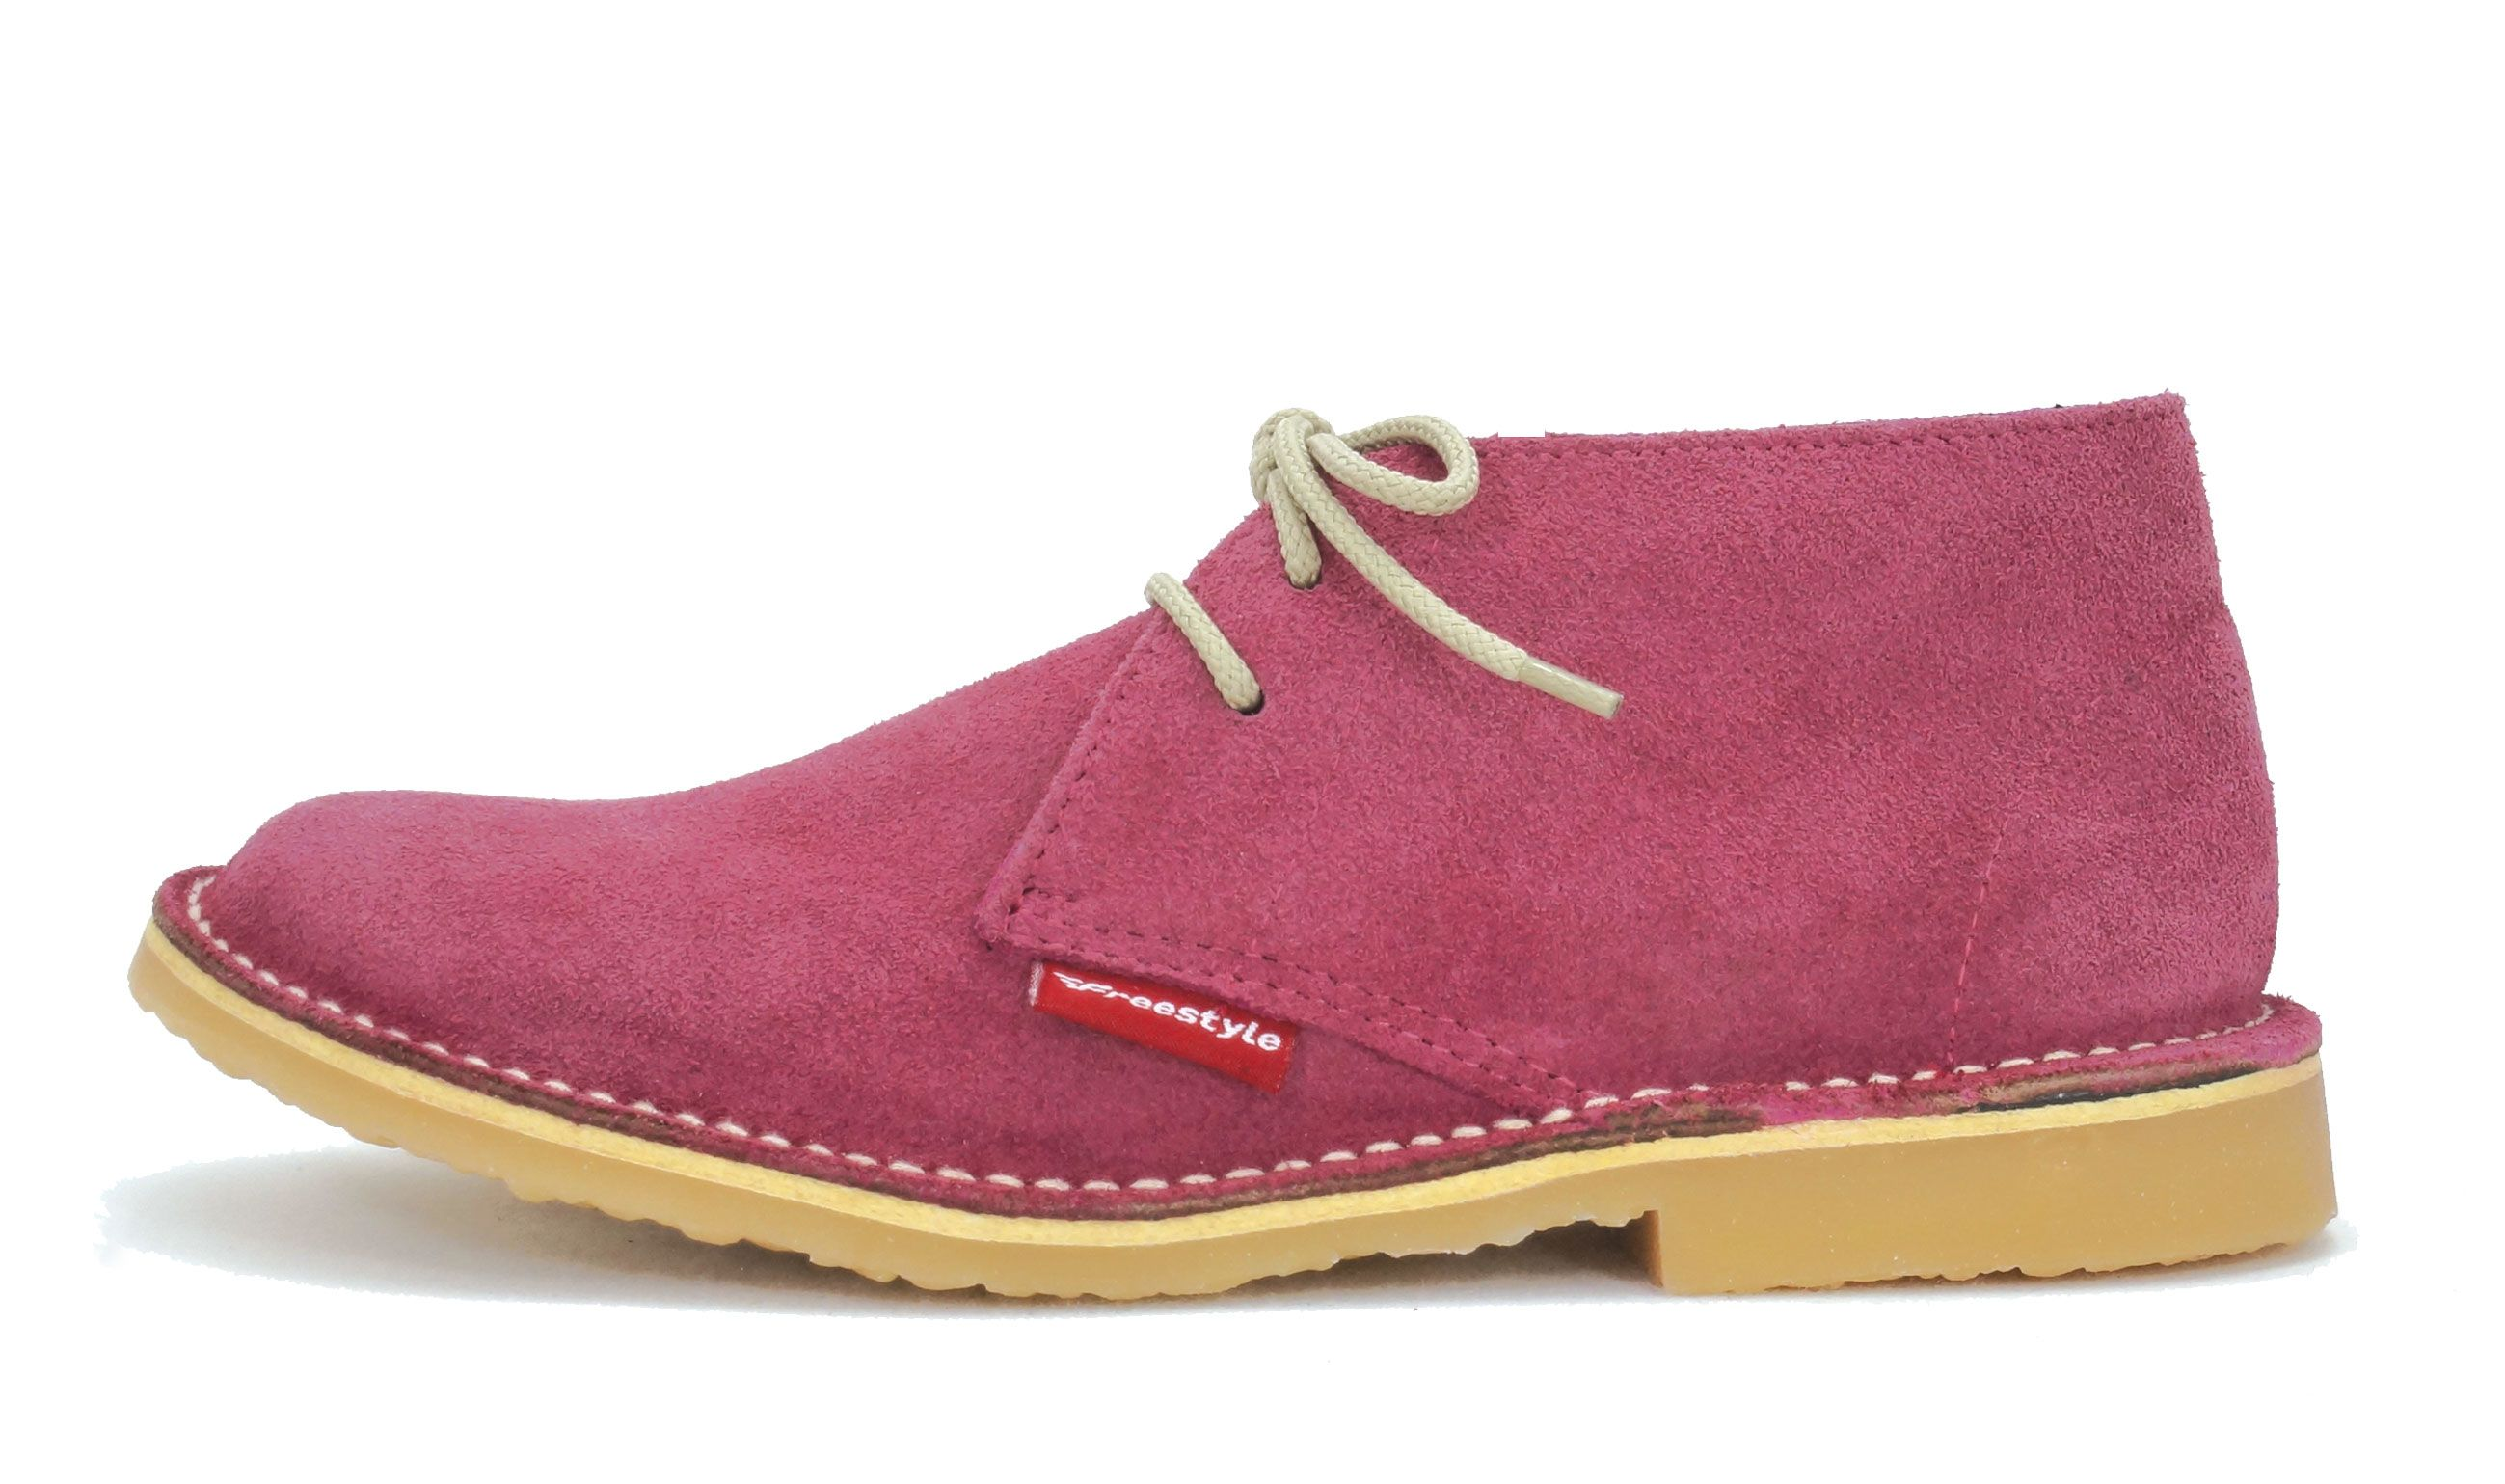 Freestyle Handcrafted Leather Hunter Veldskoen Vellies Unisex Cerise Suede Leather Shoes Woman Leather Boots Men